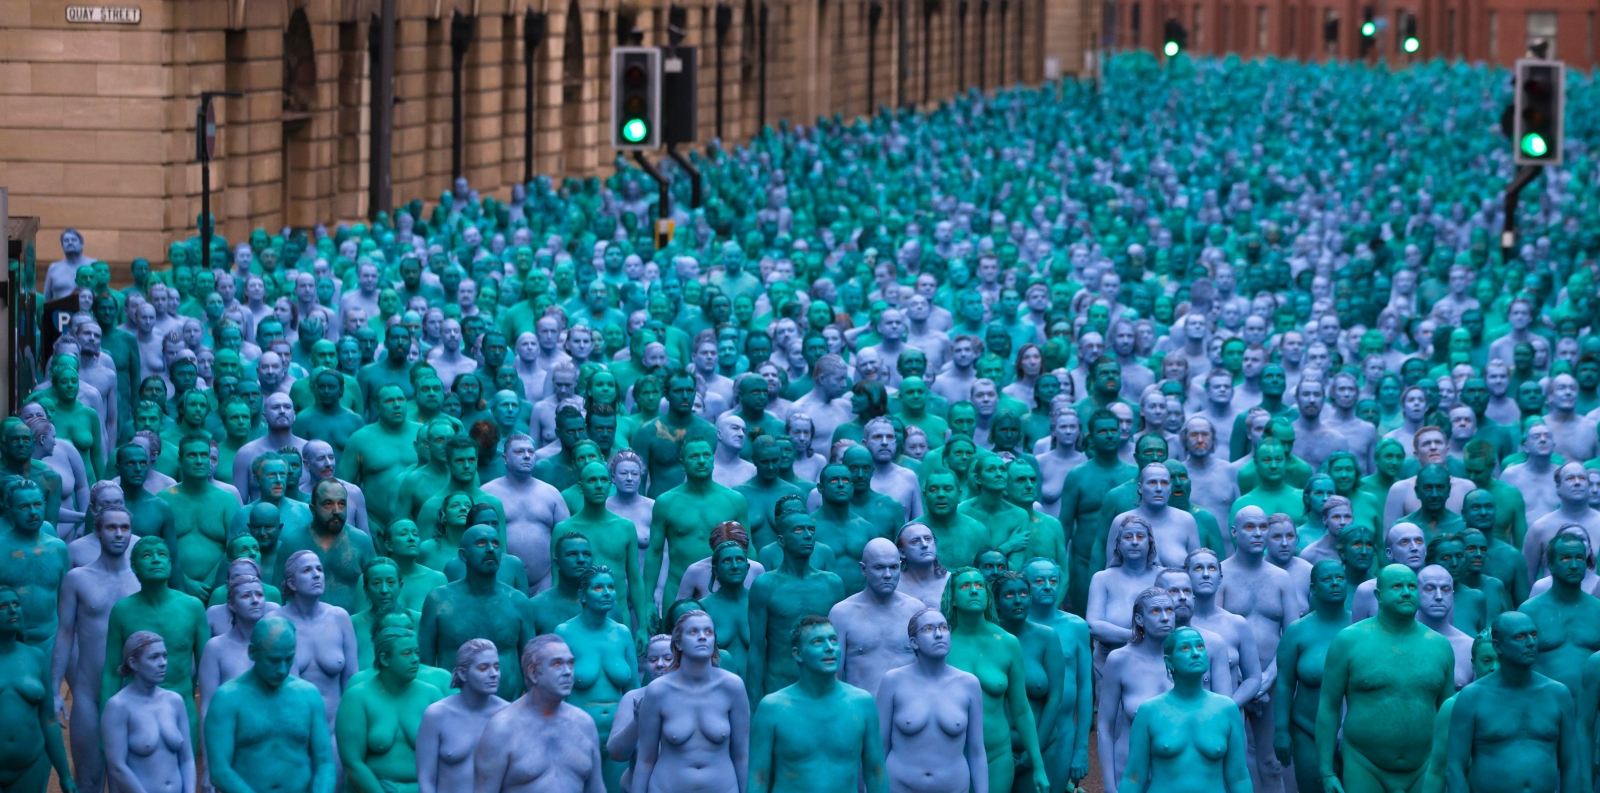 Thousands Of Naked People 76